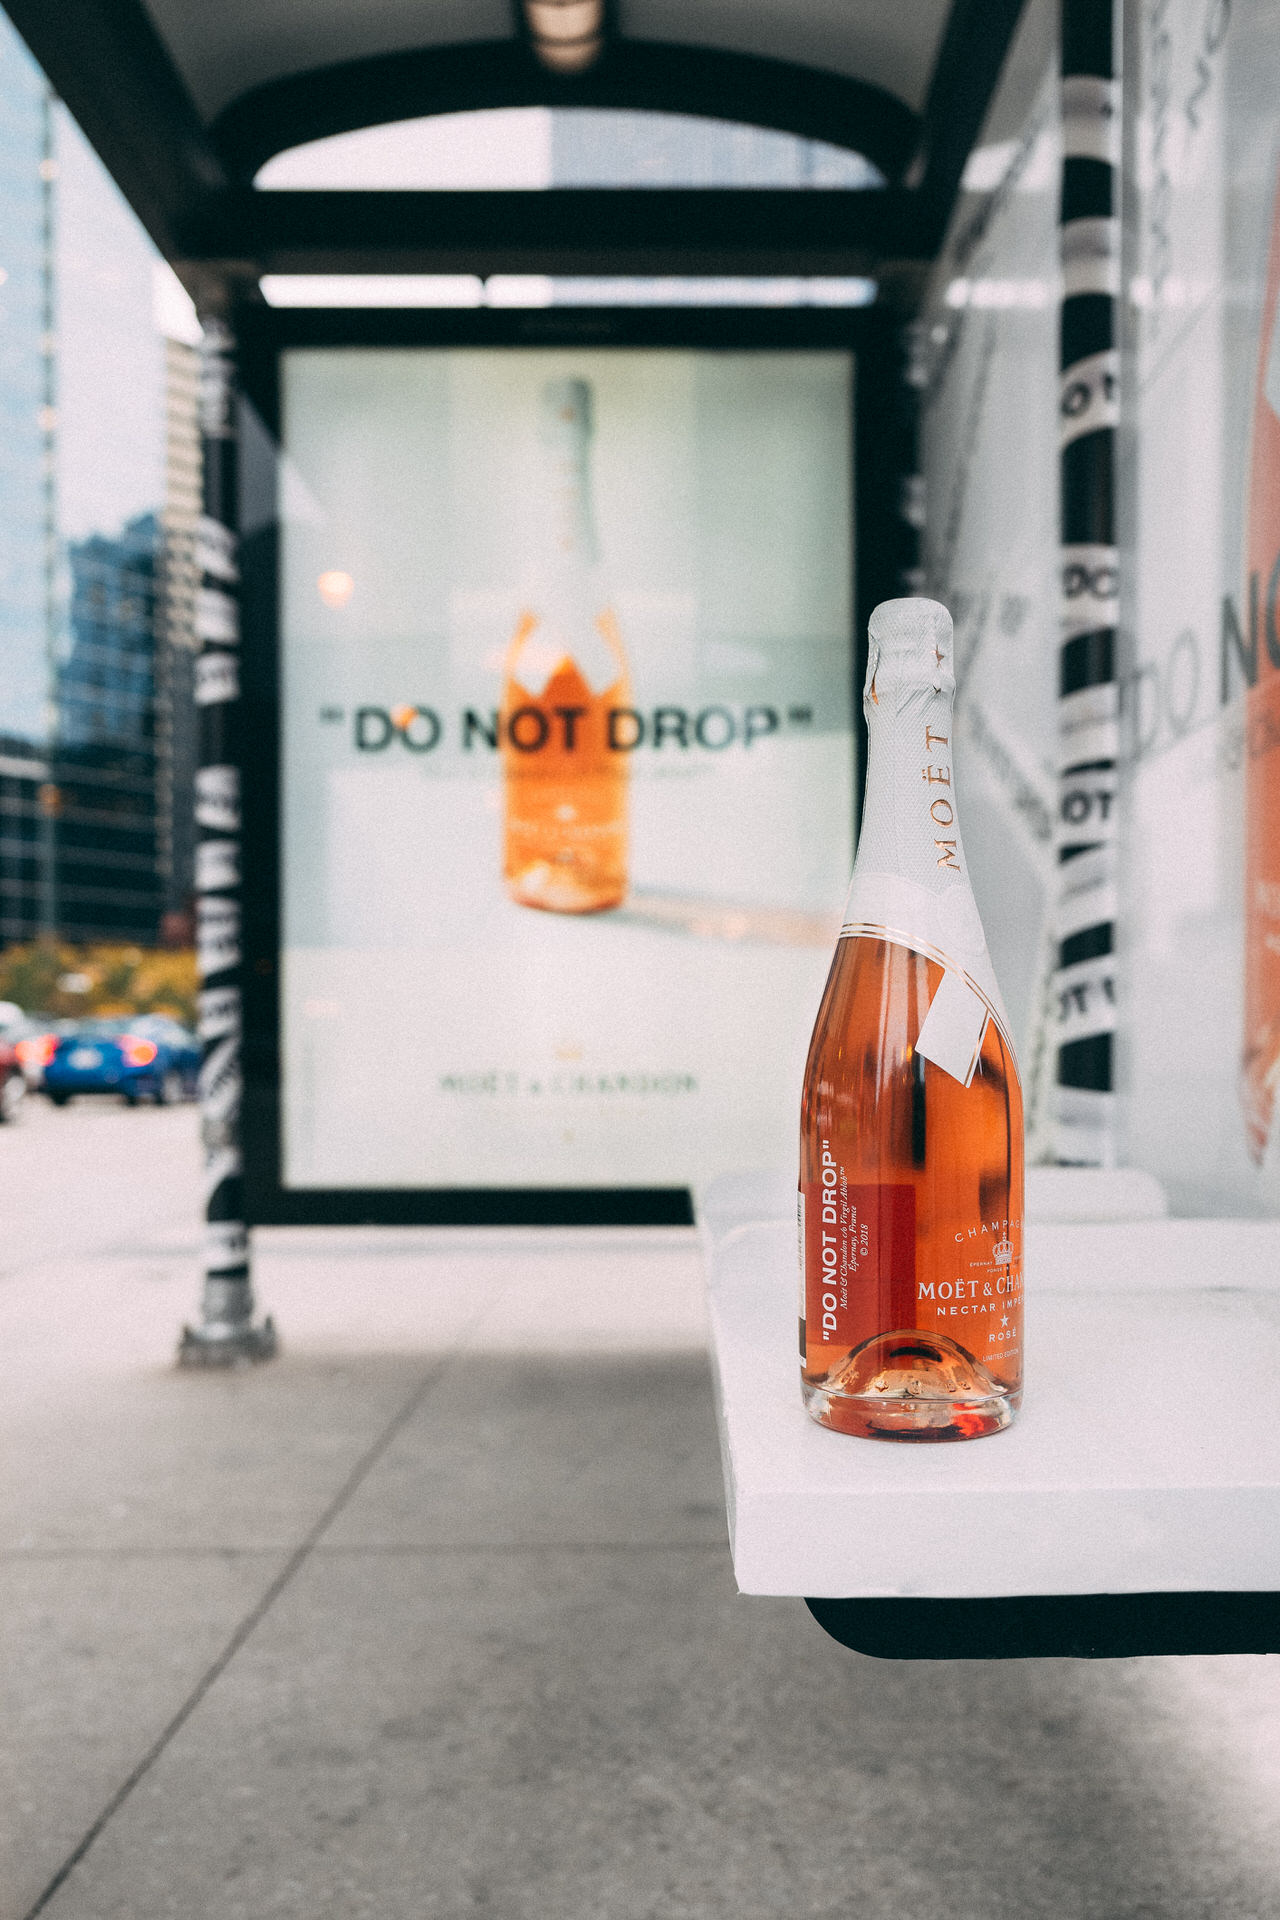 "Moët & Chandon - Vc/o Virgil Abloh ""DO NOT DROP"" Launch"